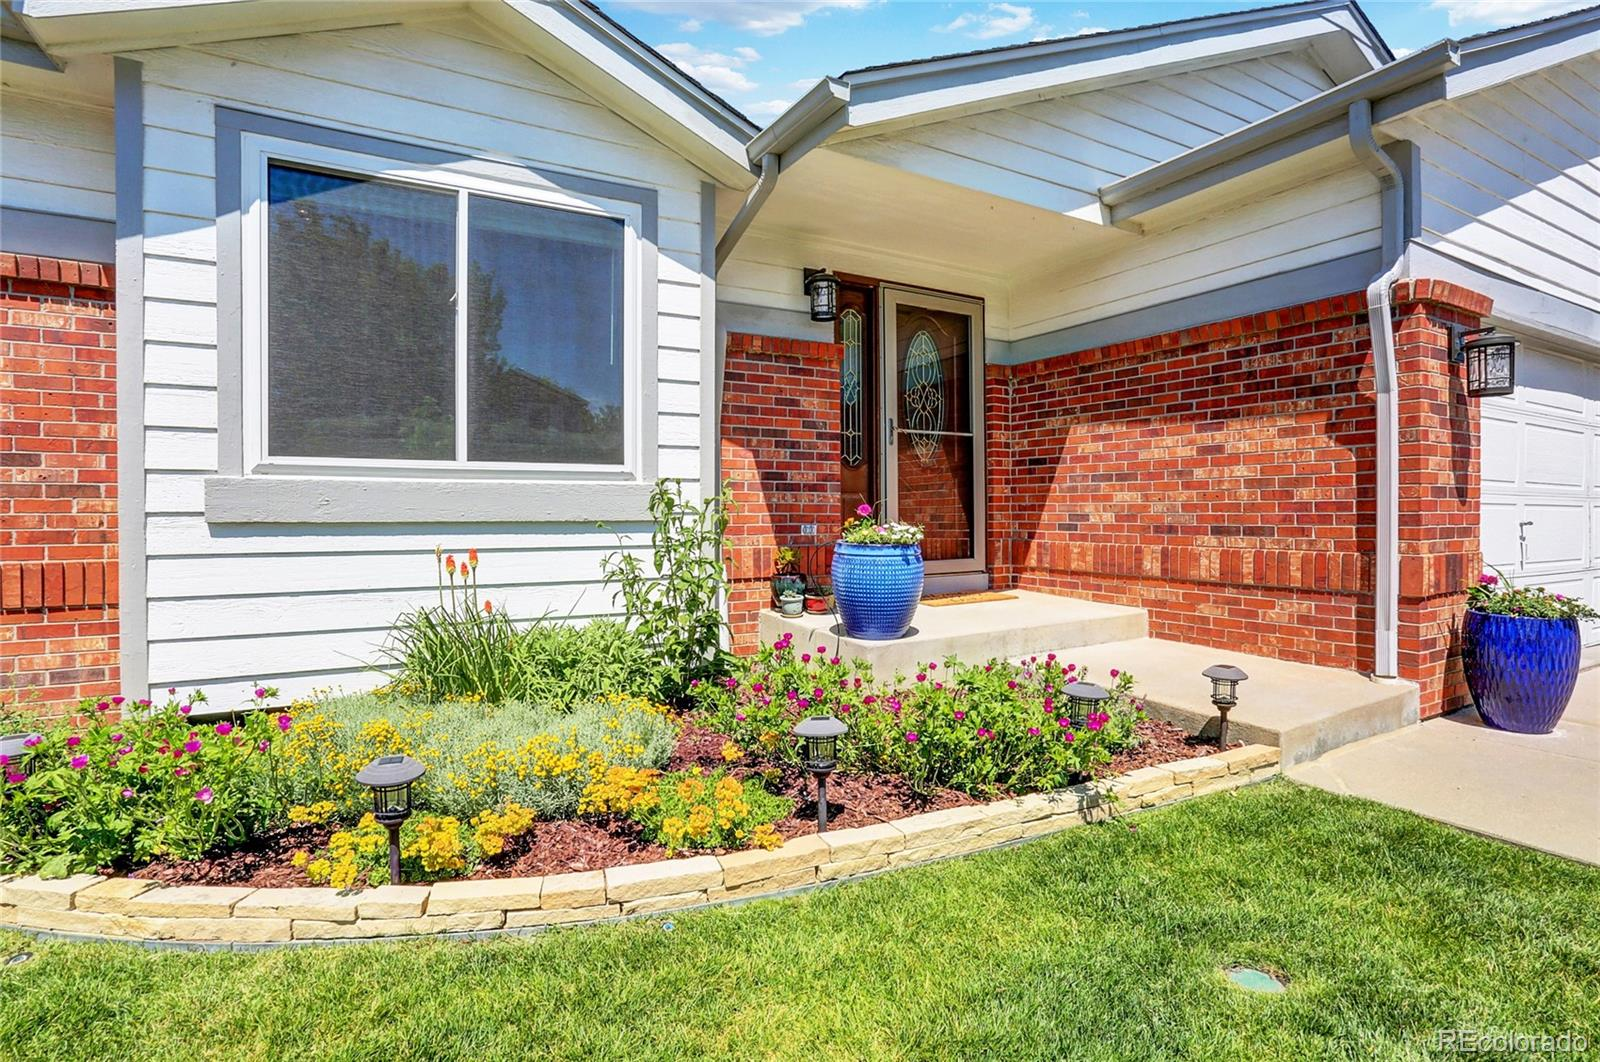 MLS# 7737811 - 28 - 1335 W 133rd Way, Westminster, CO 80234